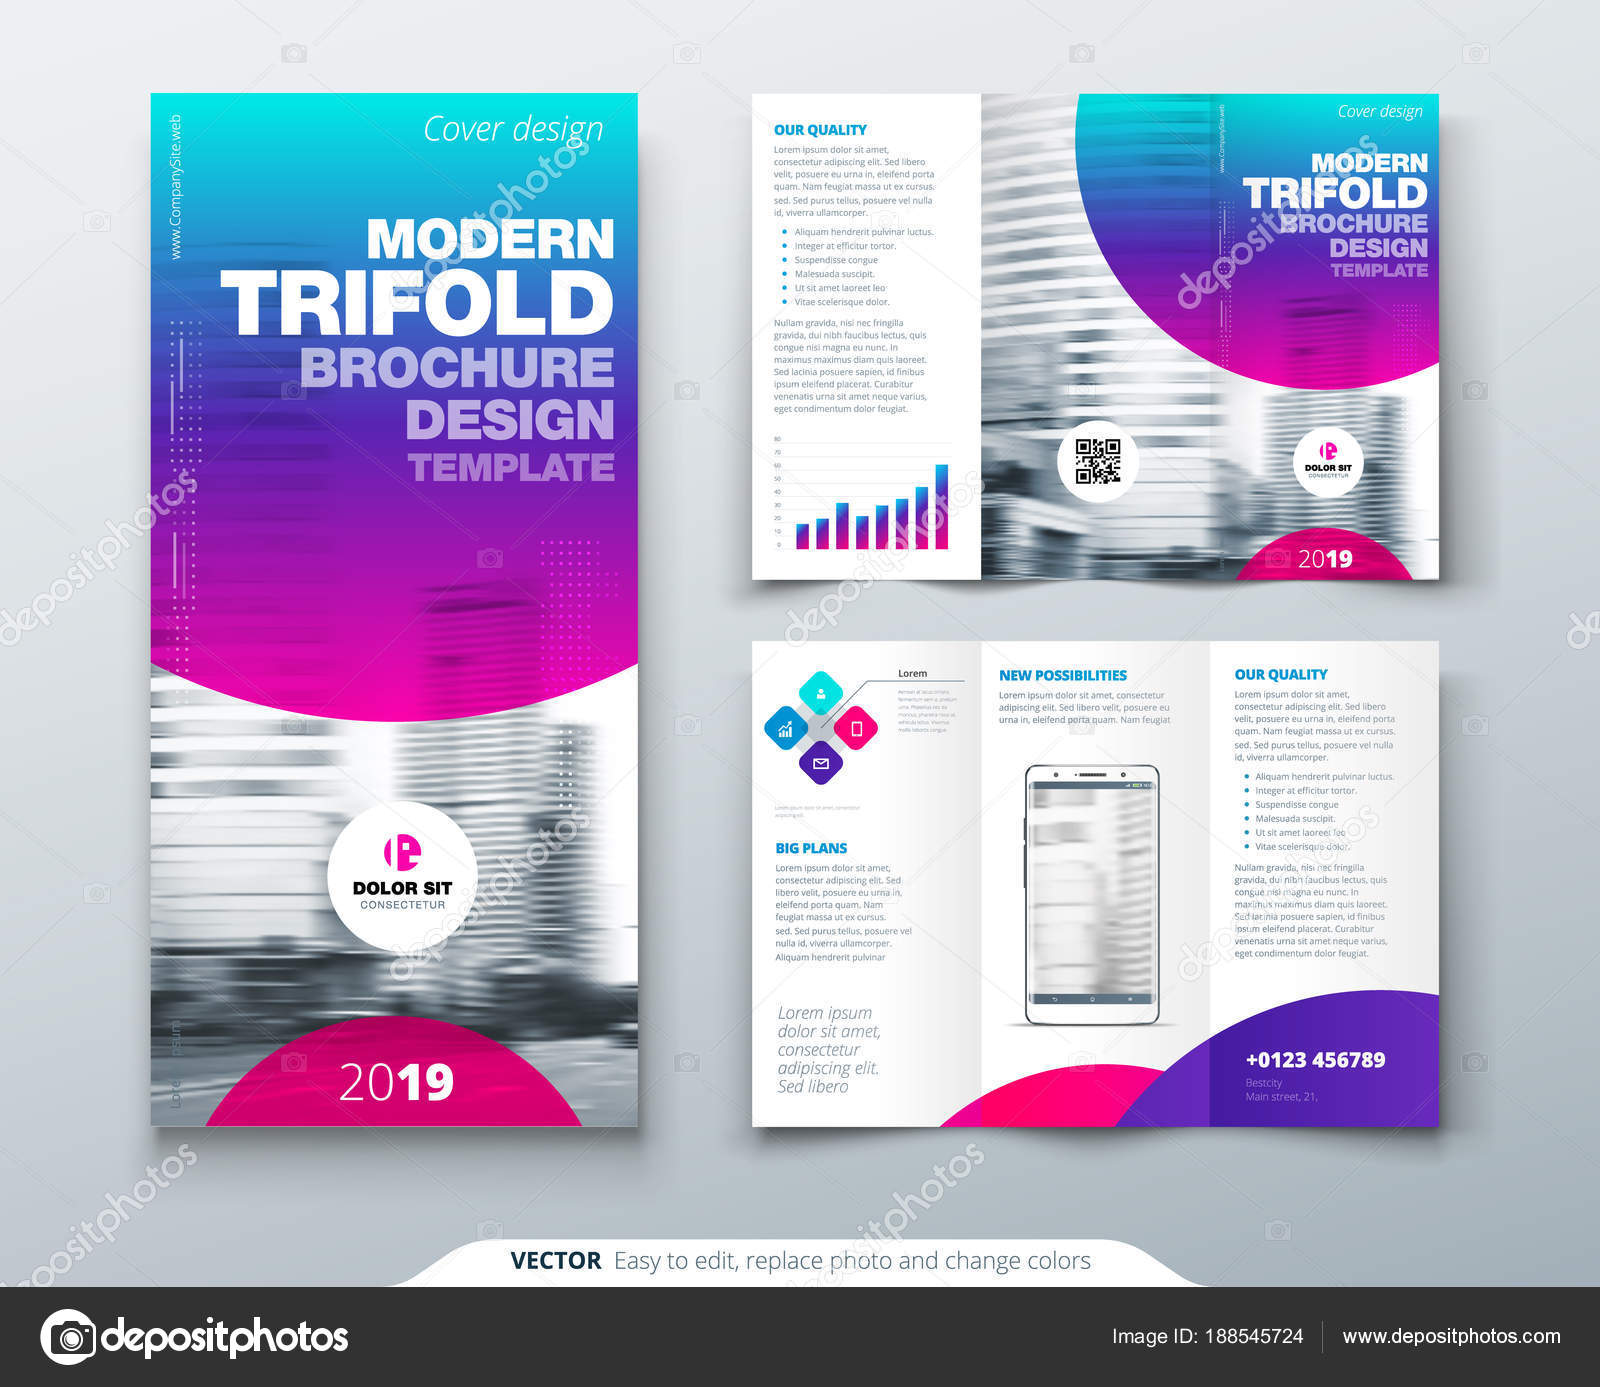 Tri Fold Brochure Design Cool Business Template For Flyer Layout With Modern